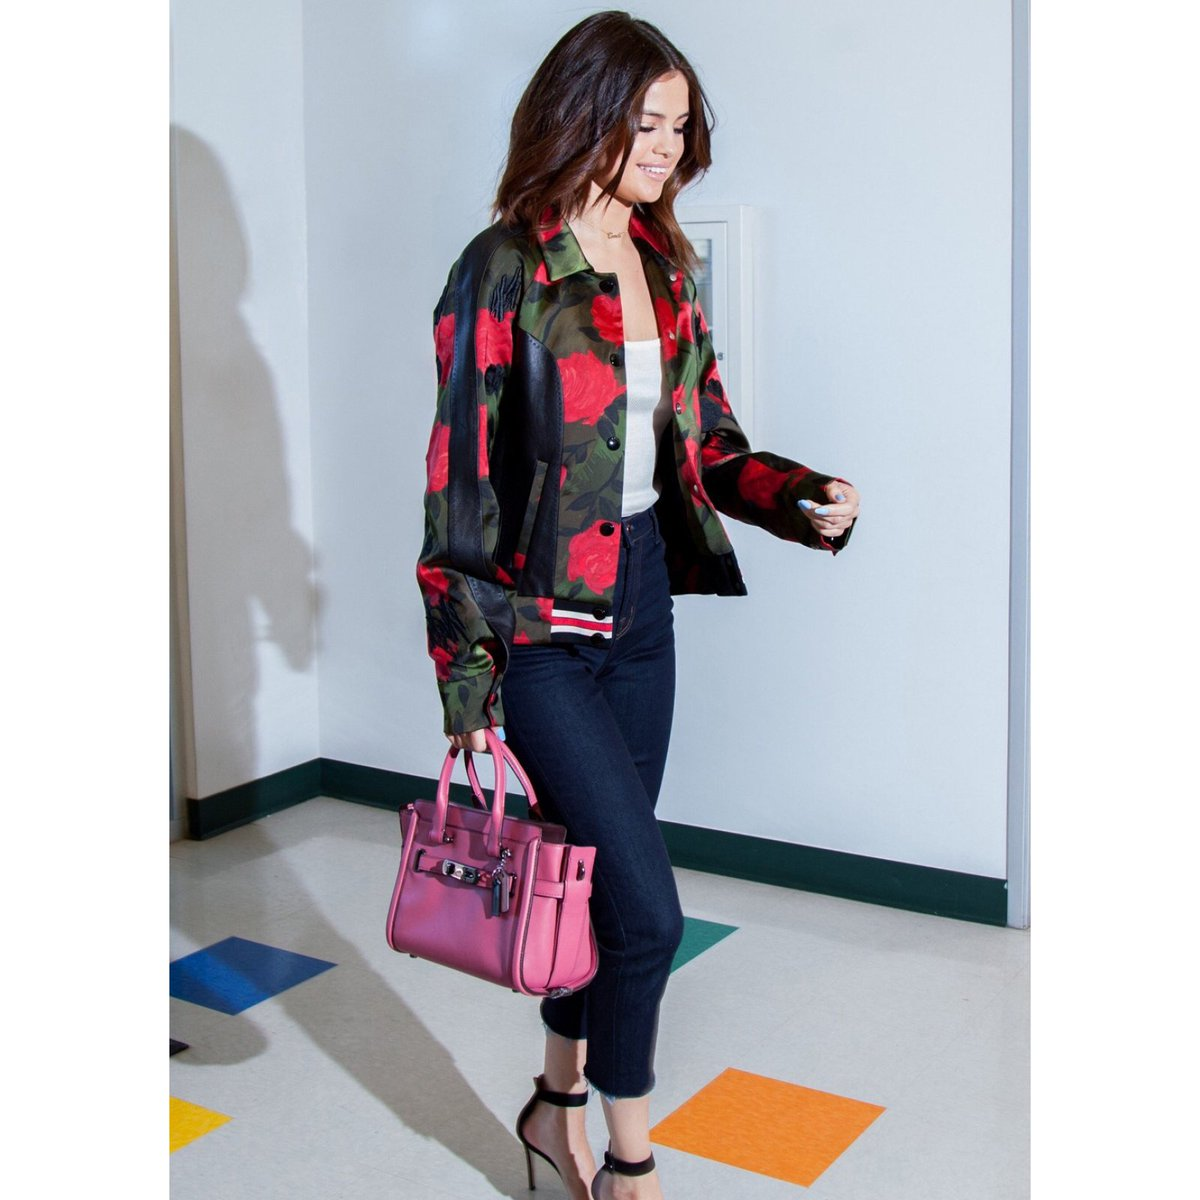 #SelenaGomez in our #CoachSpring2017 Camo Rose Varsity Jacket and Swagger 27 Bag. #WhatsYourSwagger